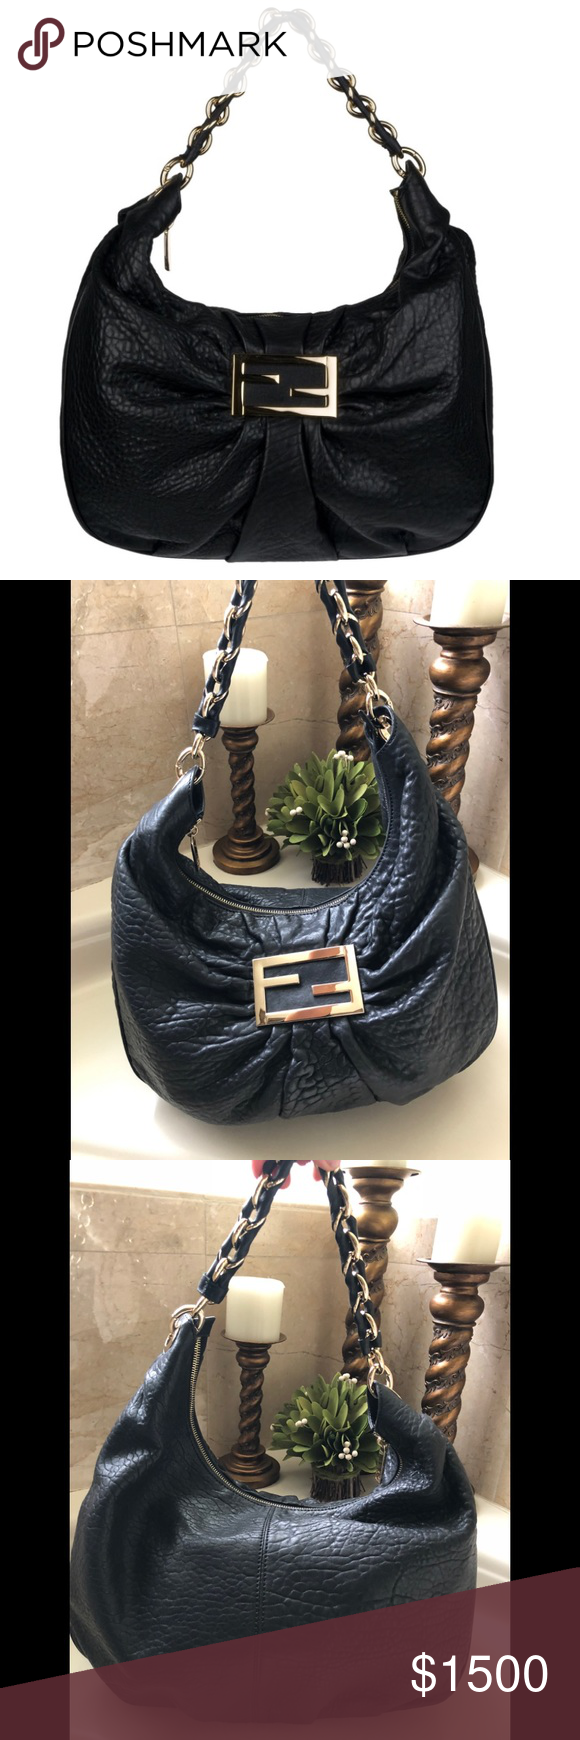 promo code for fendi wallet gold and black texture 5071a d7988 6f59ecd702